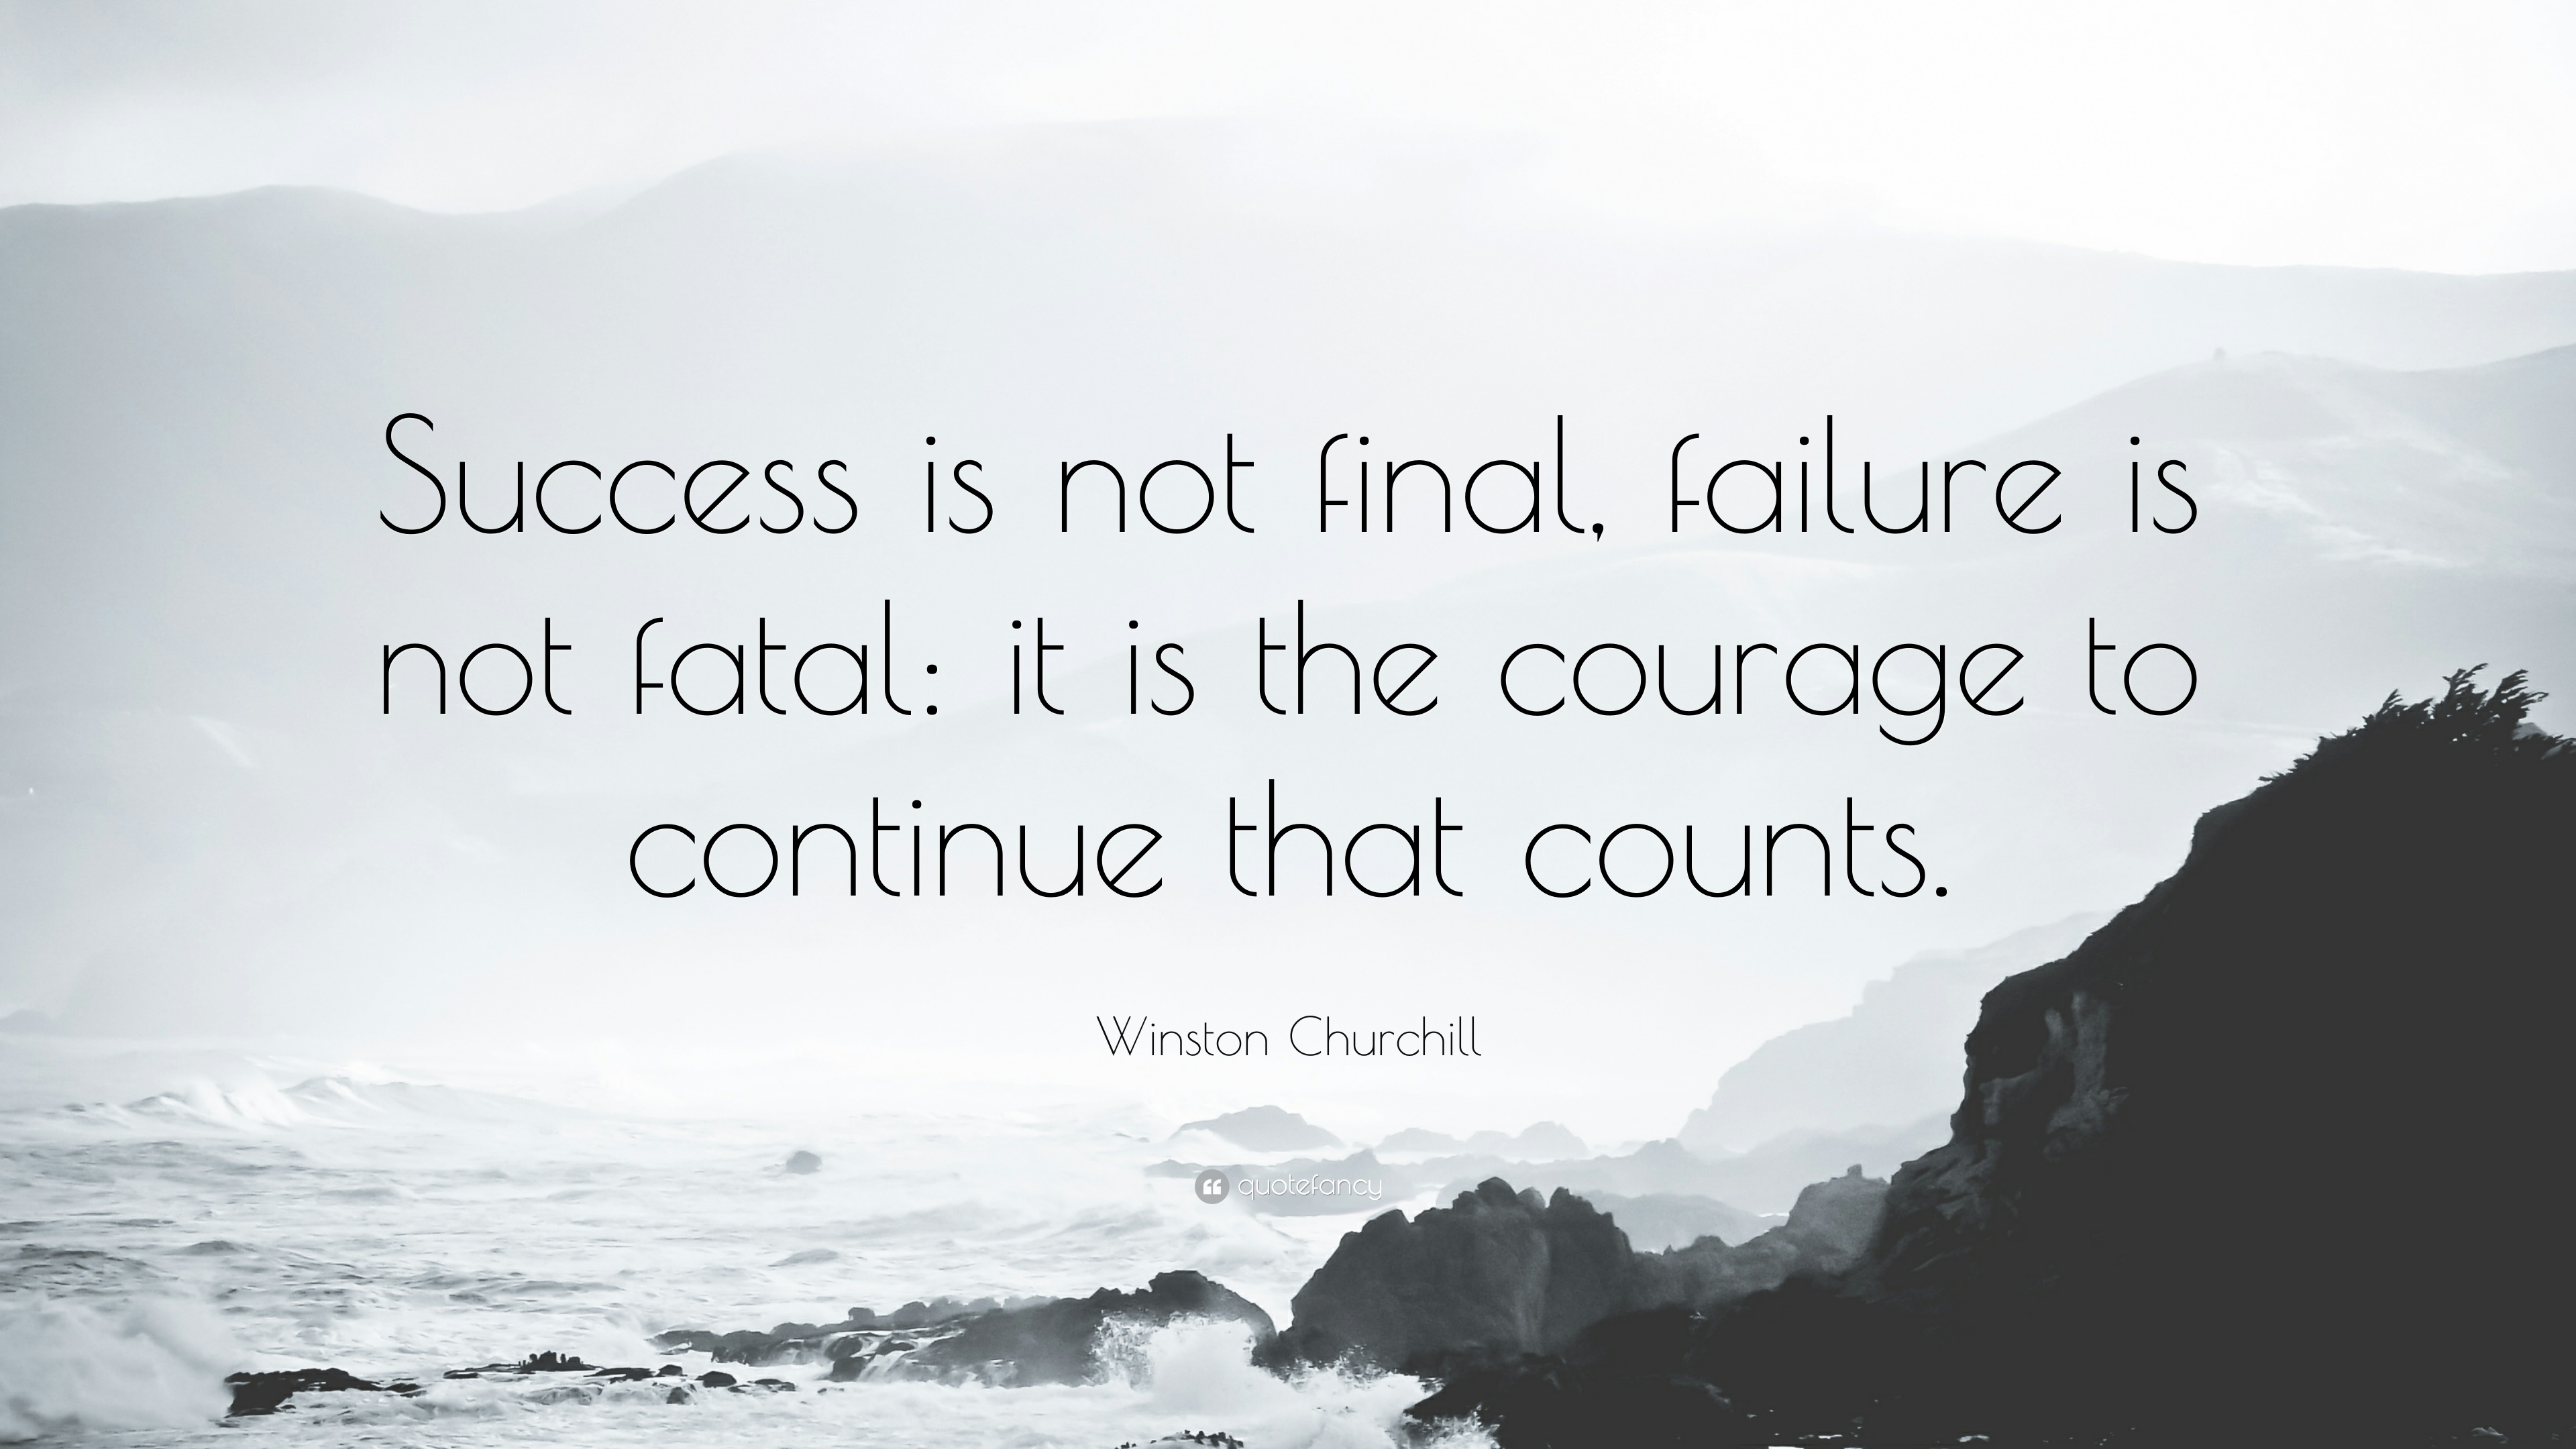 Success Quote Wallpaper By Winston Churchill: Success is not final ...